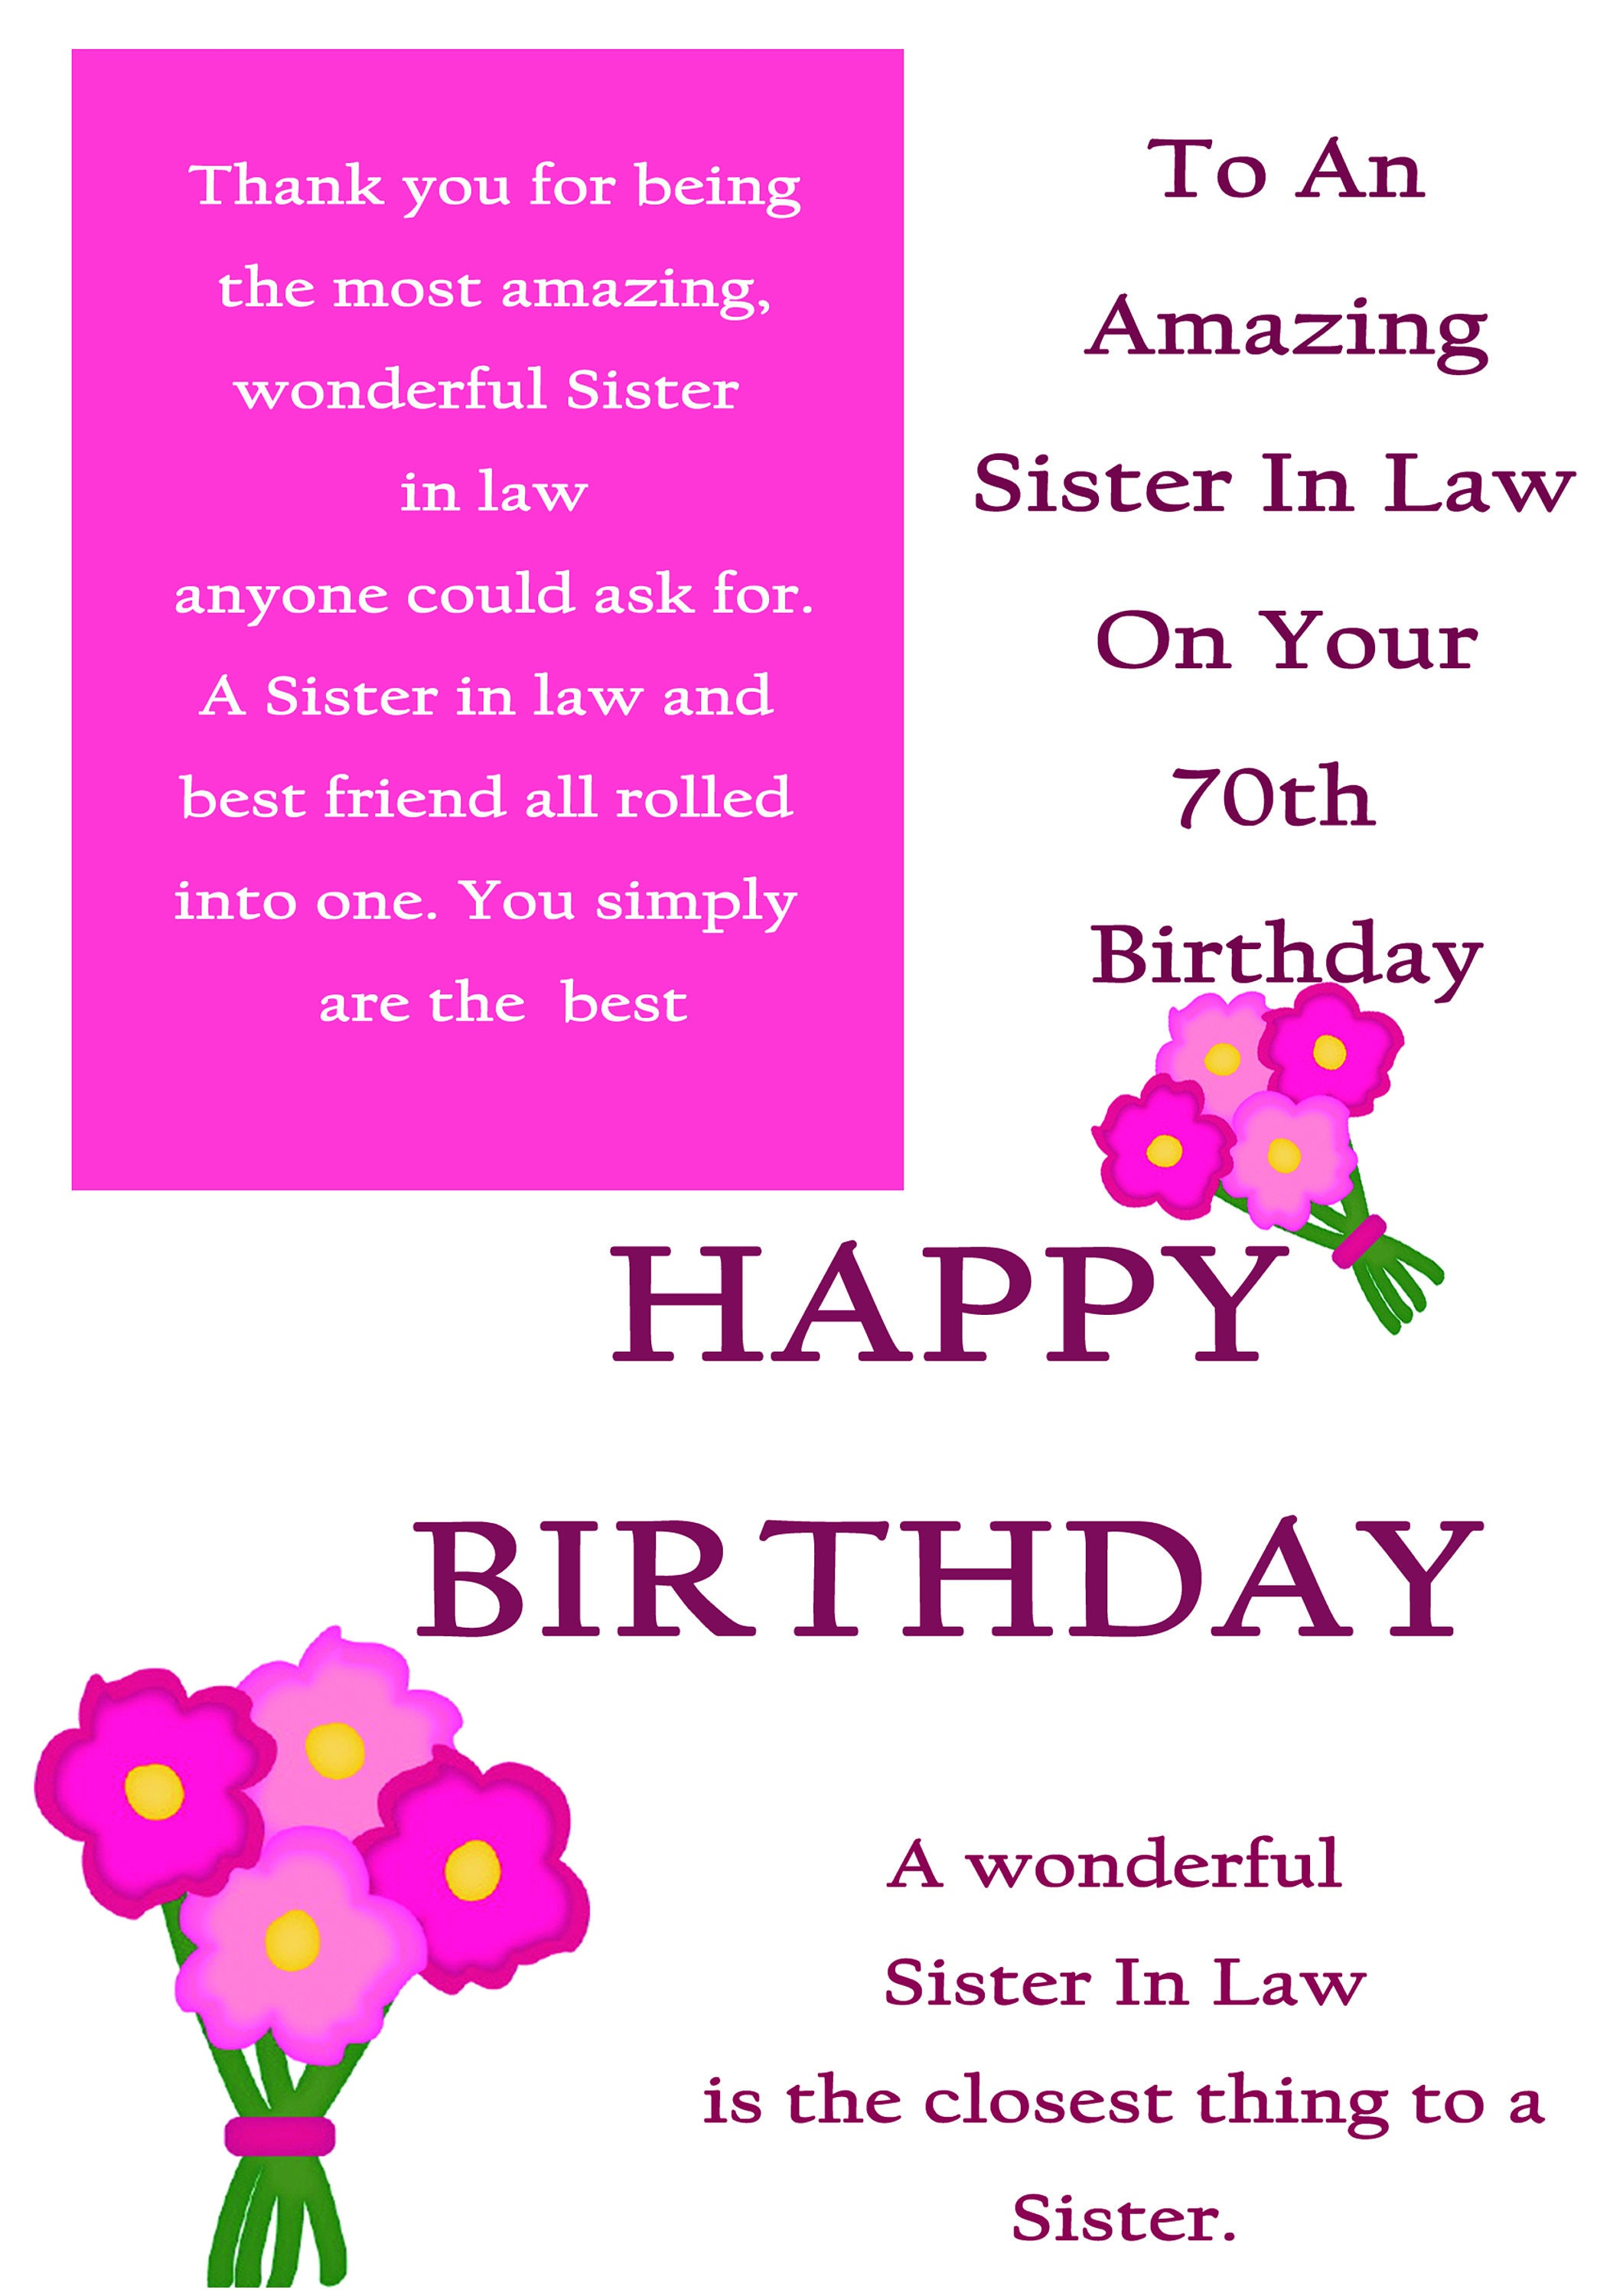 Sister in Law 70 Birthday Card with removable laminate   Etsy